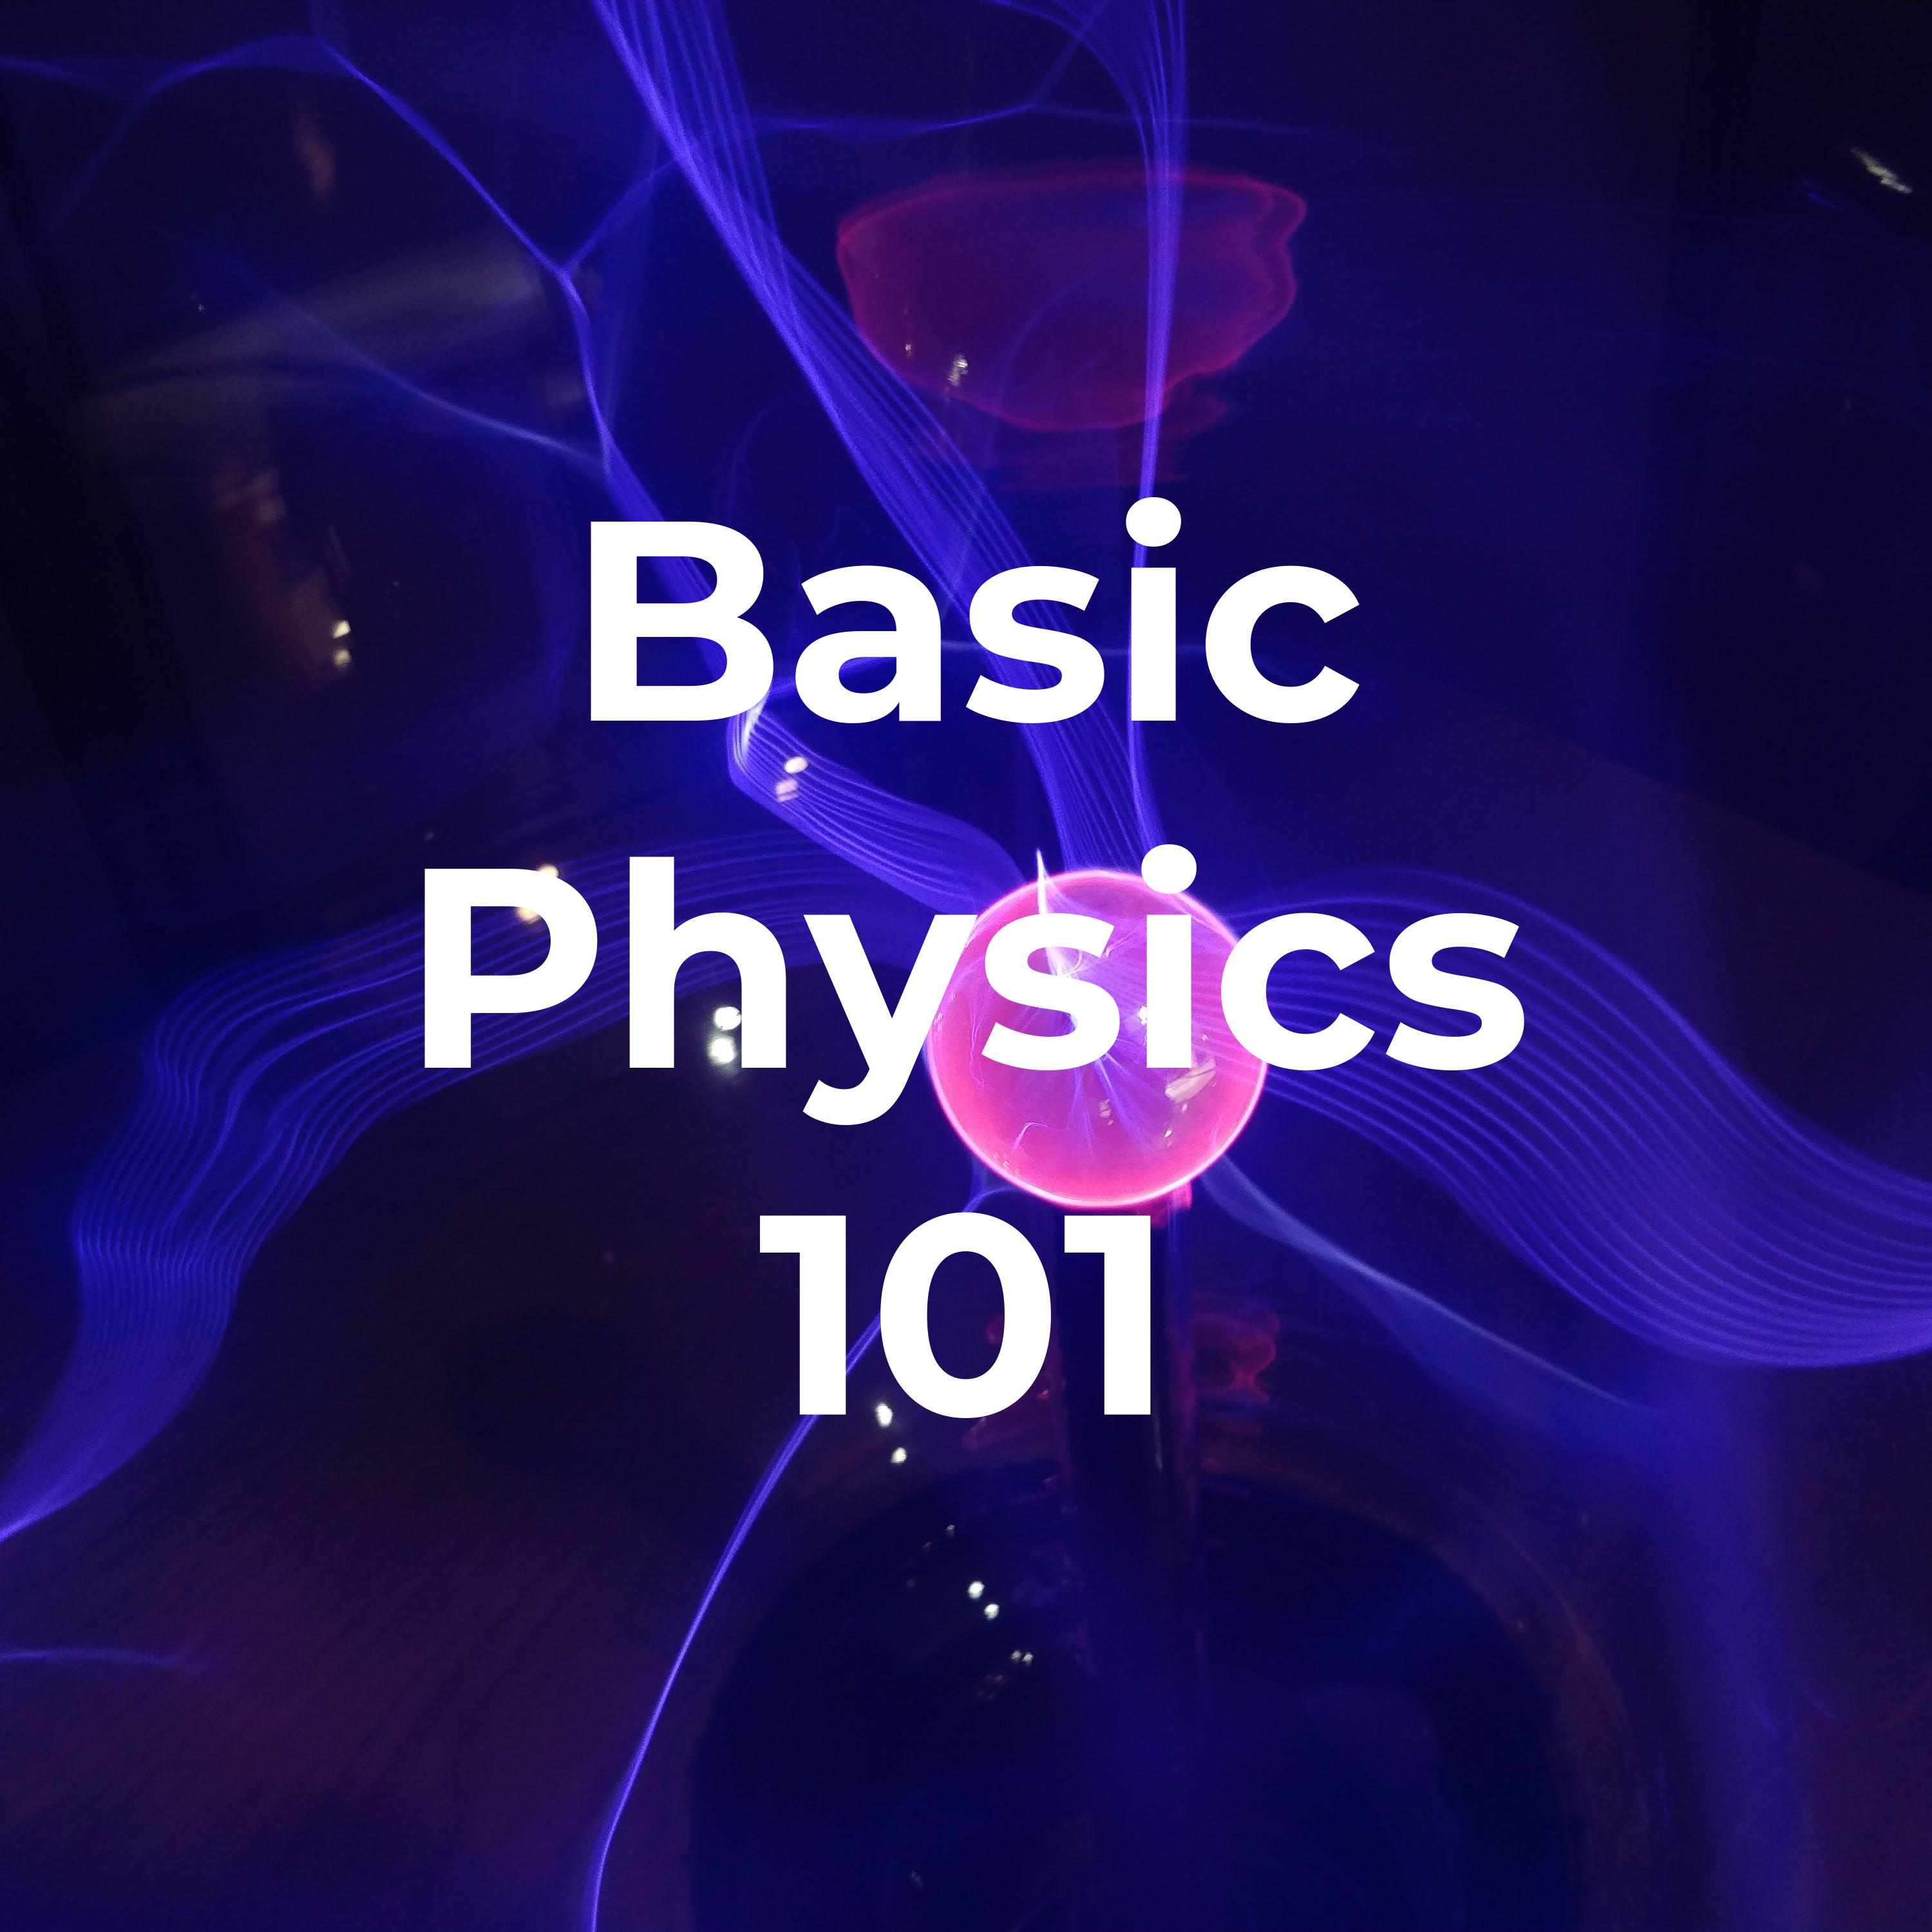 Basic Physics 101